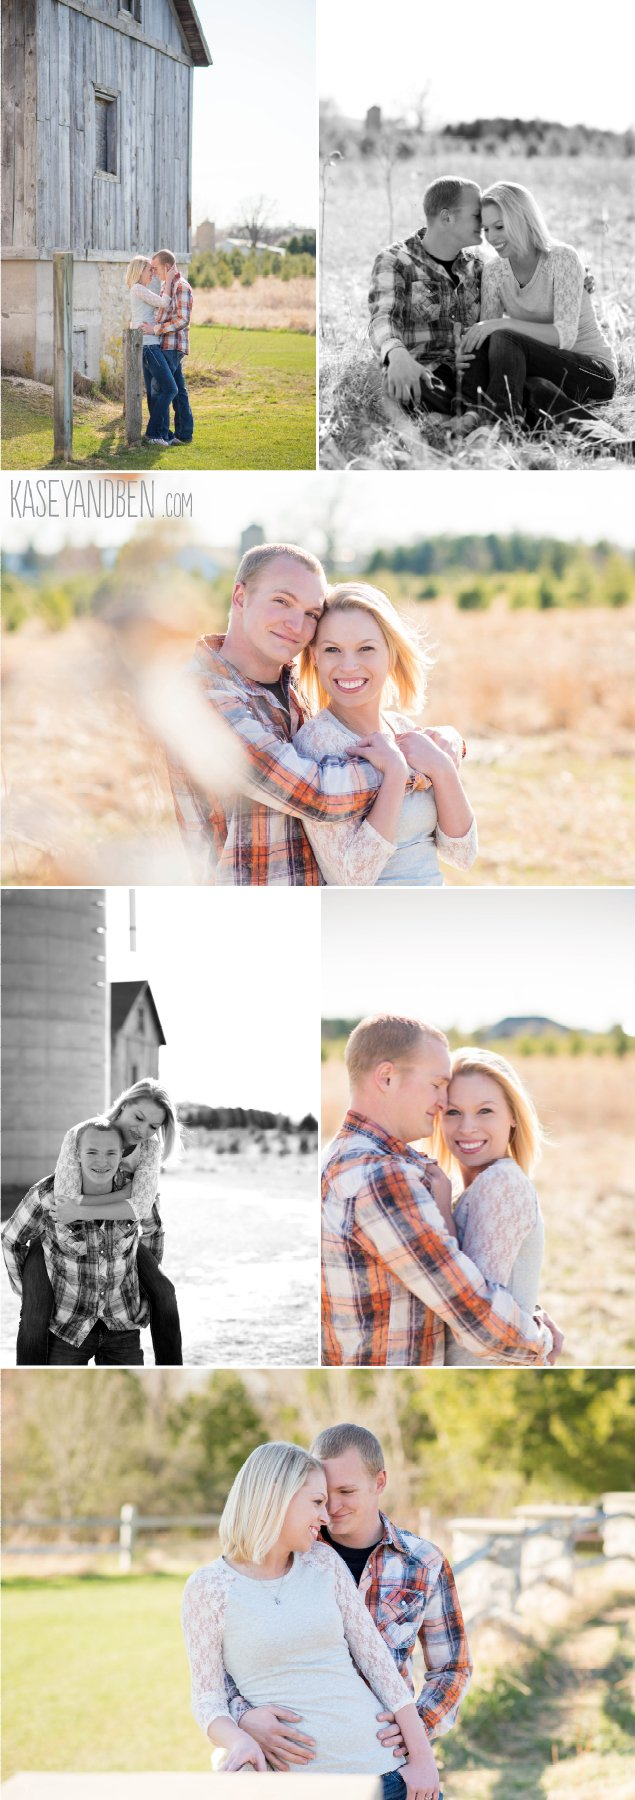 Green_Bay_Fonferek_Glen_Country_Couples_Engagement_Farm_Barn_Photography_Ledgeview